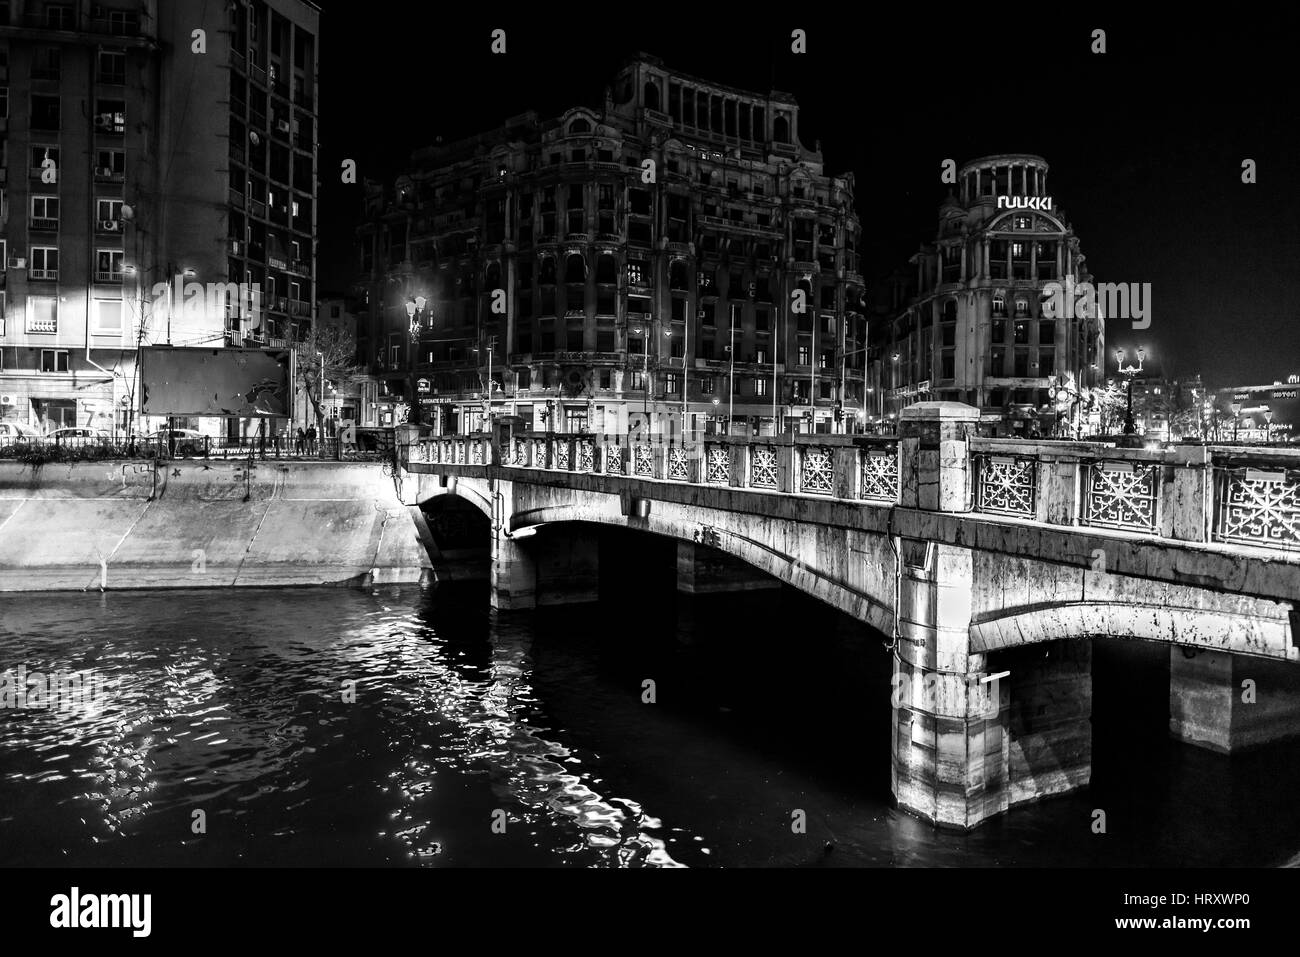 United Nations Square, Bucharest, Romania - Stock Image